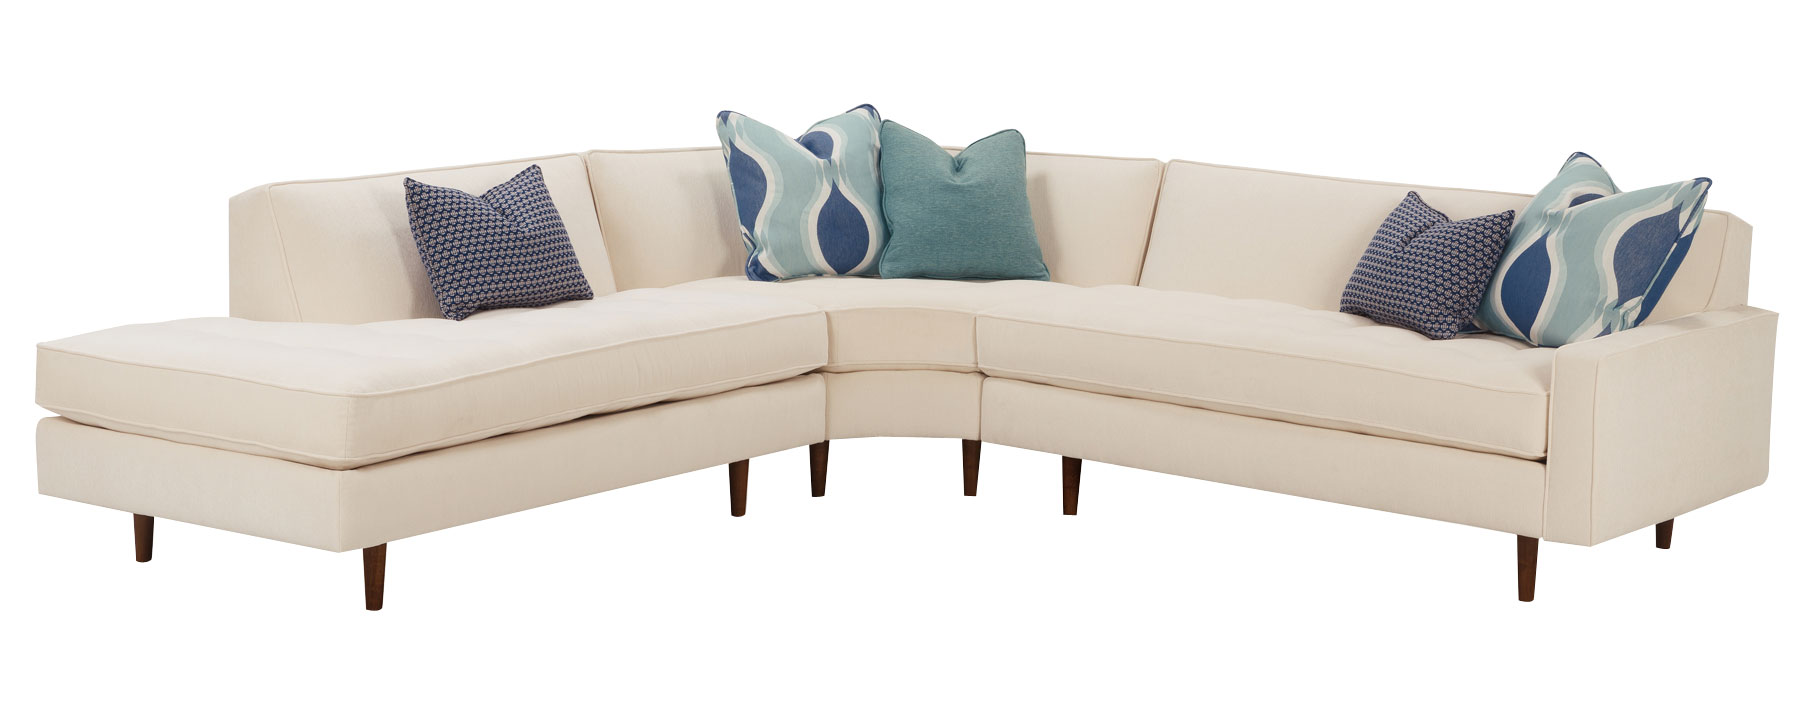 designer style mid century modern sectional fabric sectional sofas